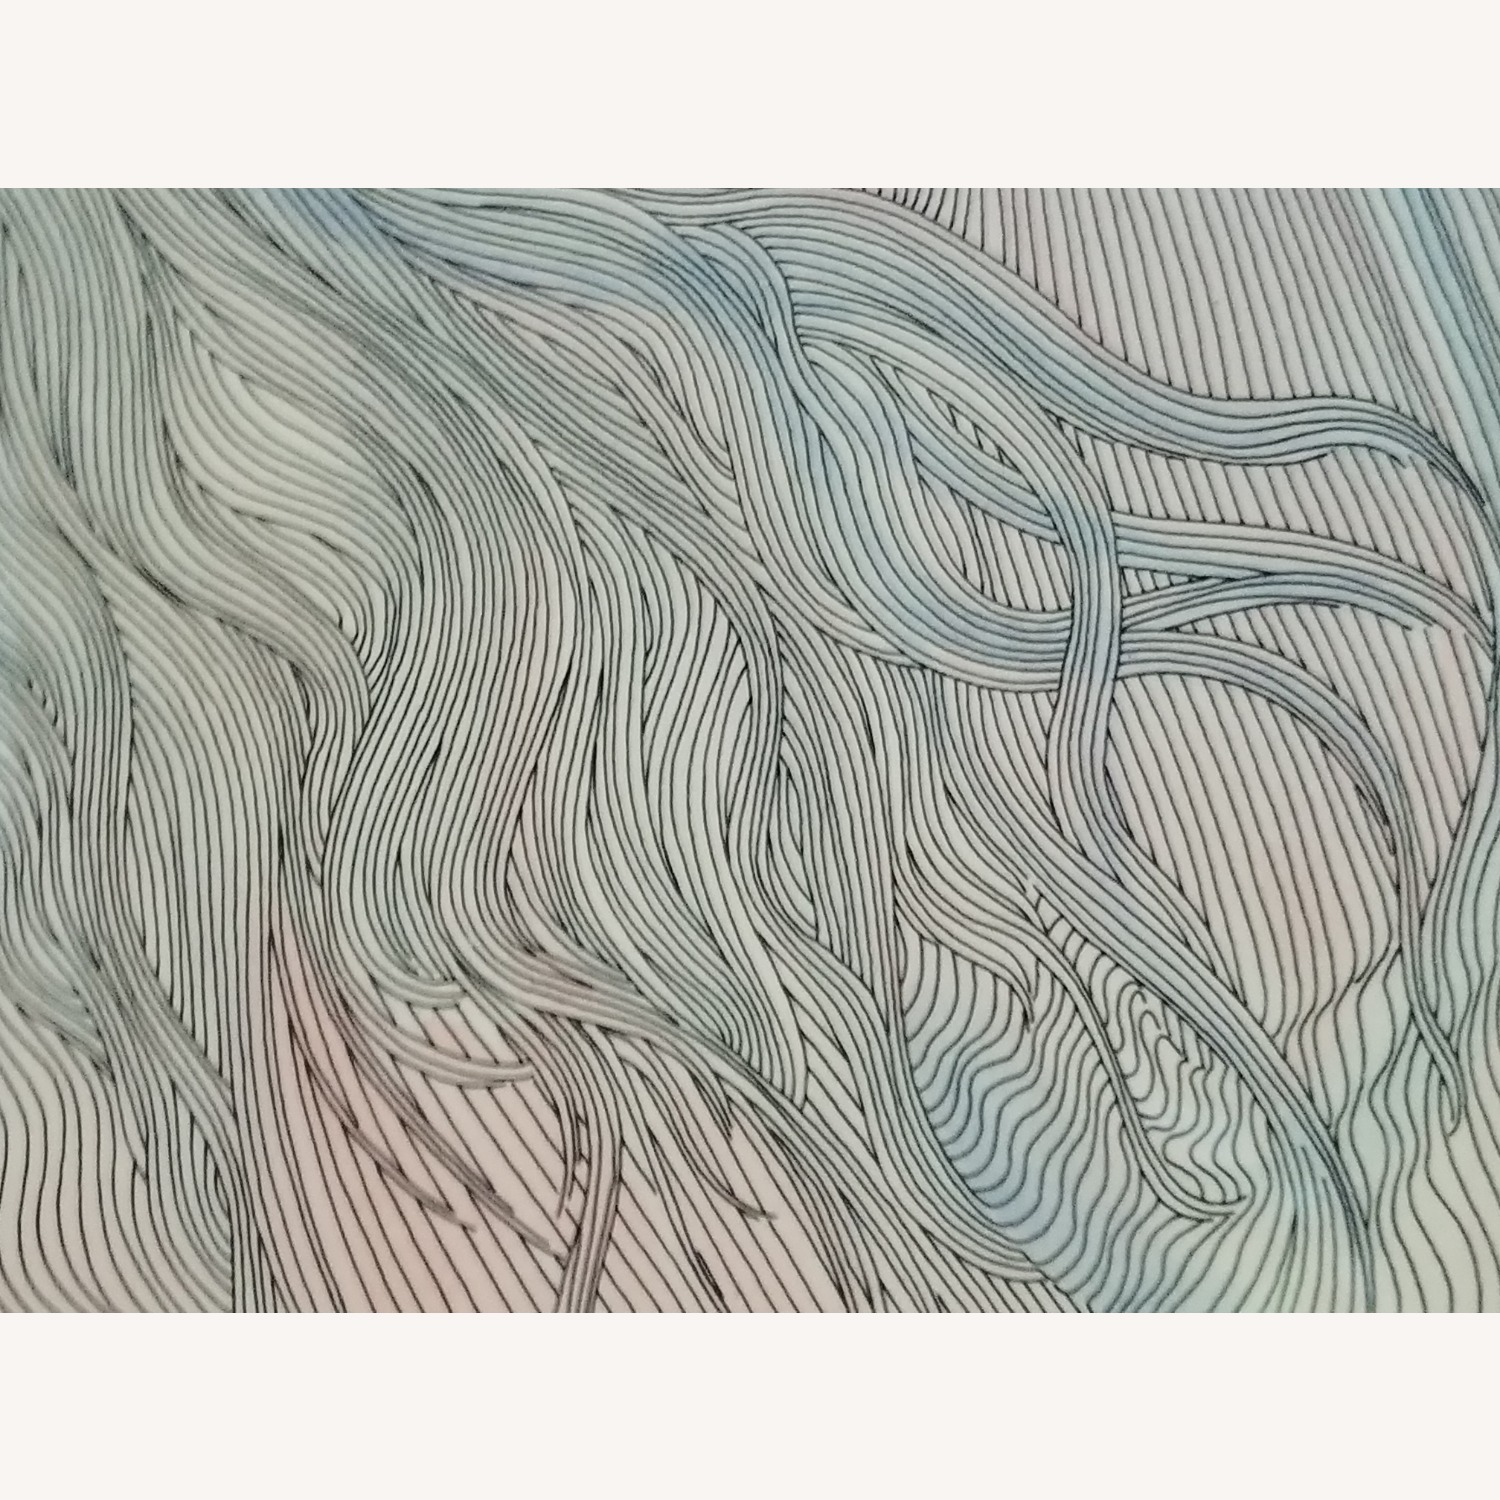 Guillaume Azoulay Original Line Drawing Lithograph - image-6